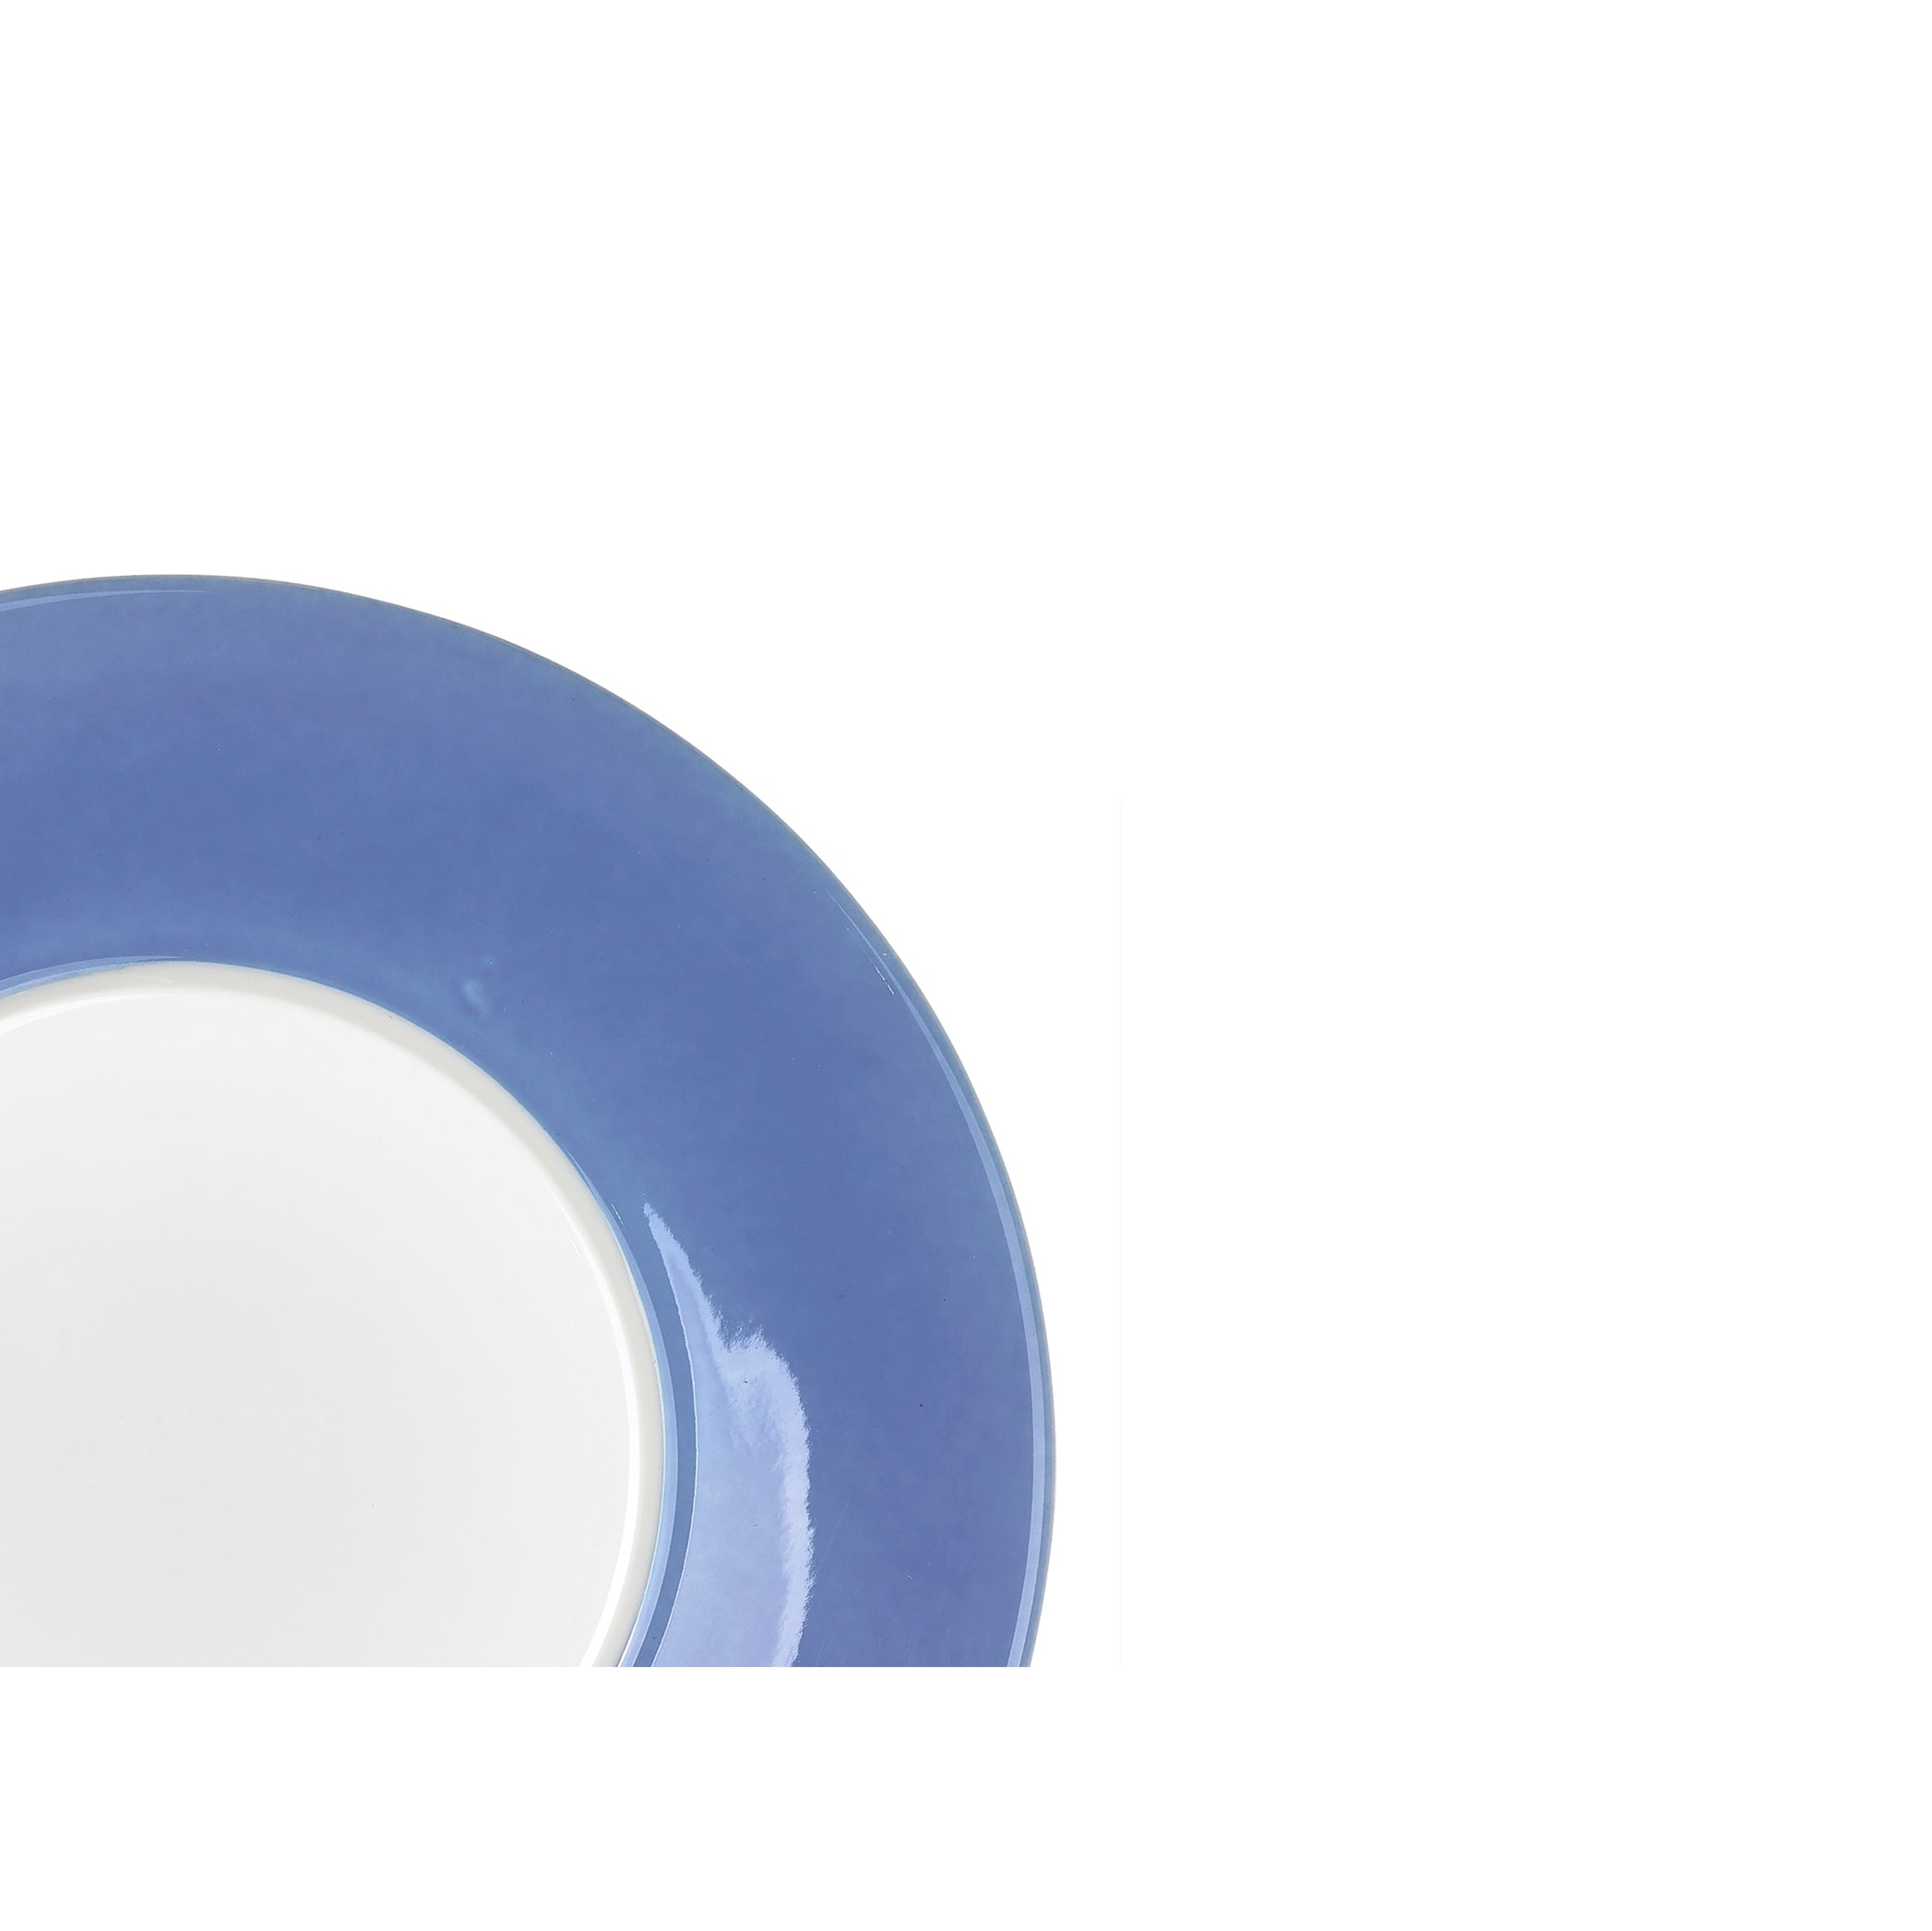 S&B 16cm Porcelain Dessert Plate with Blue Edge